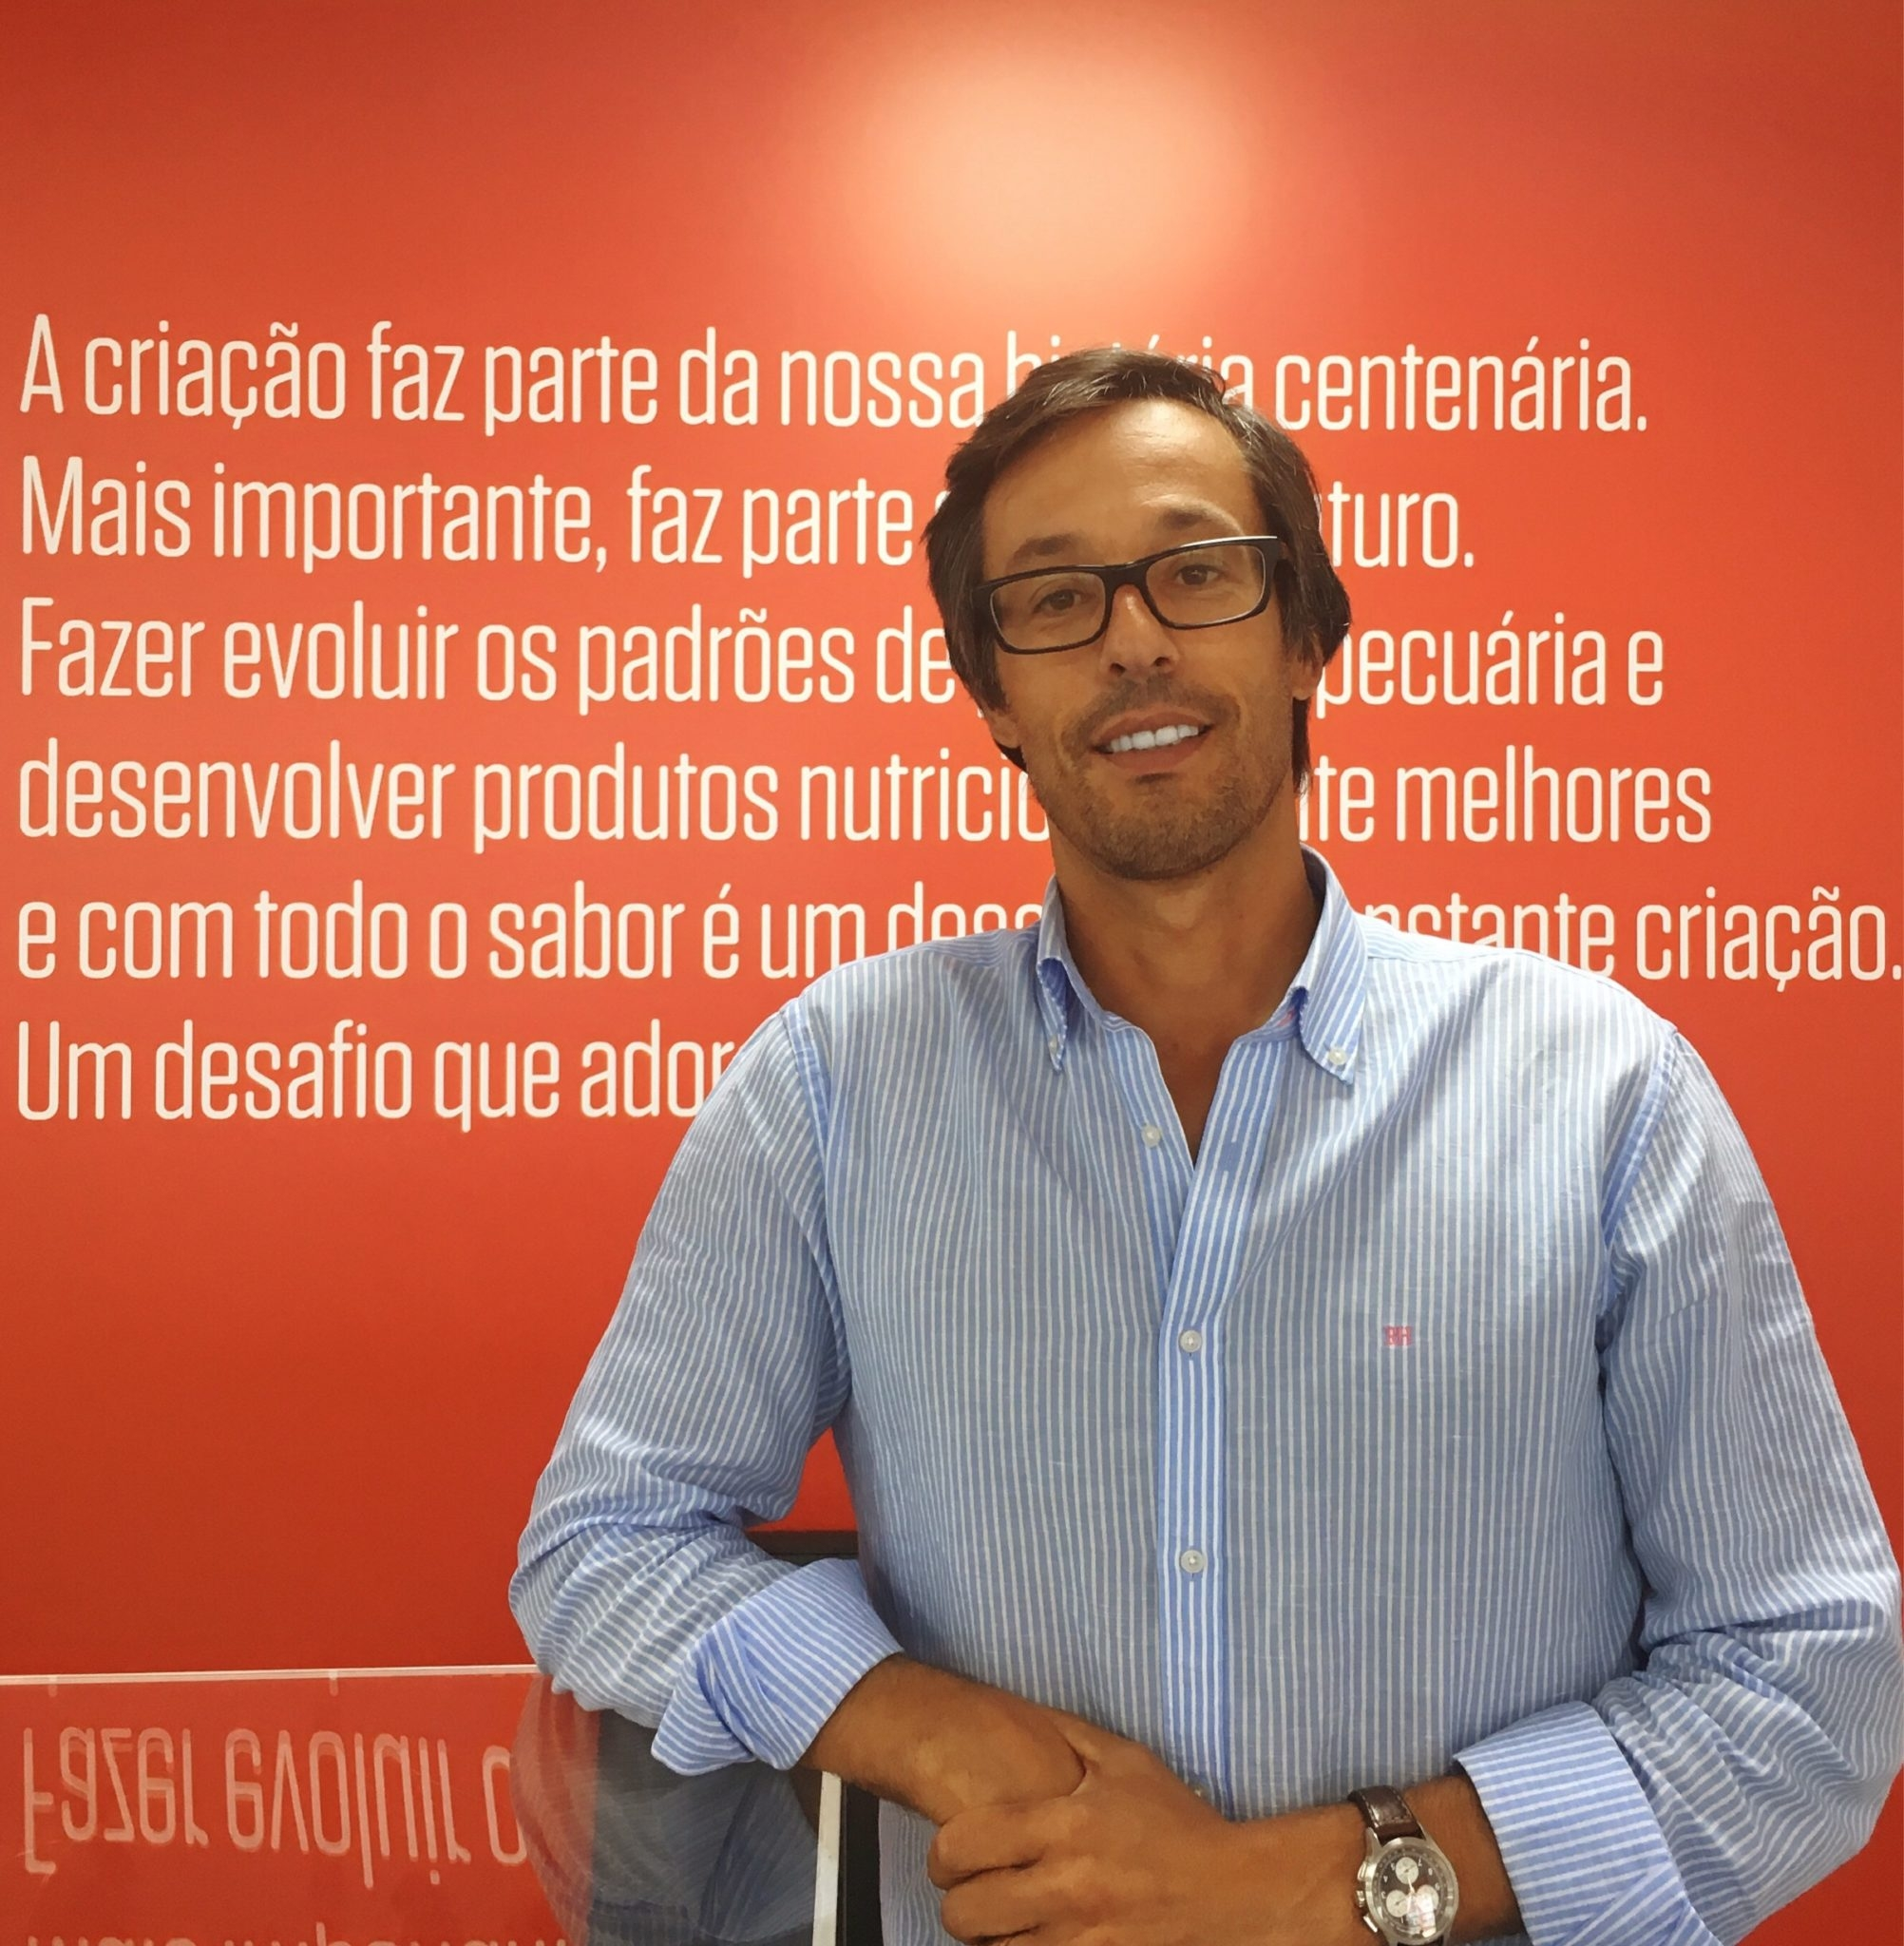 Marco Andrade, director de marketing do grupo Montalva